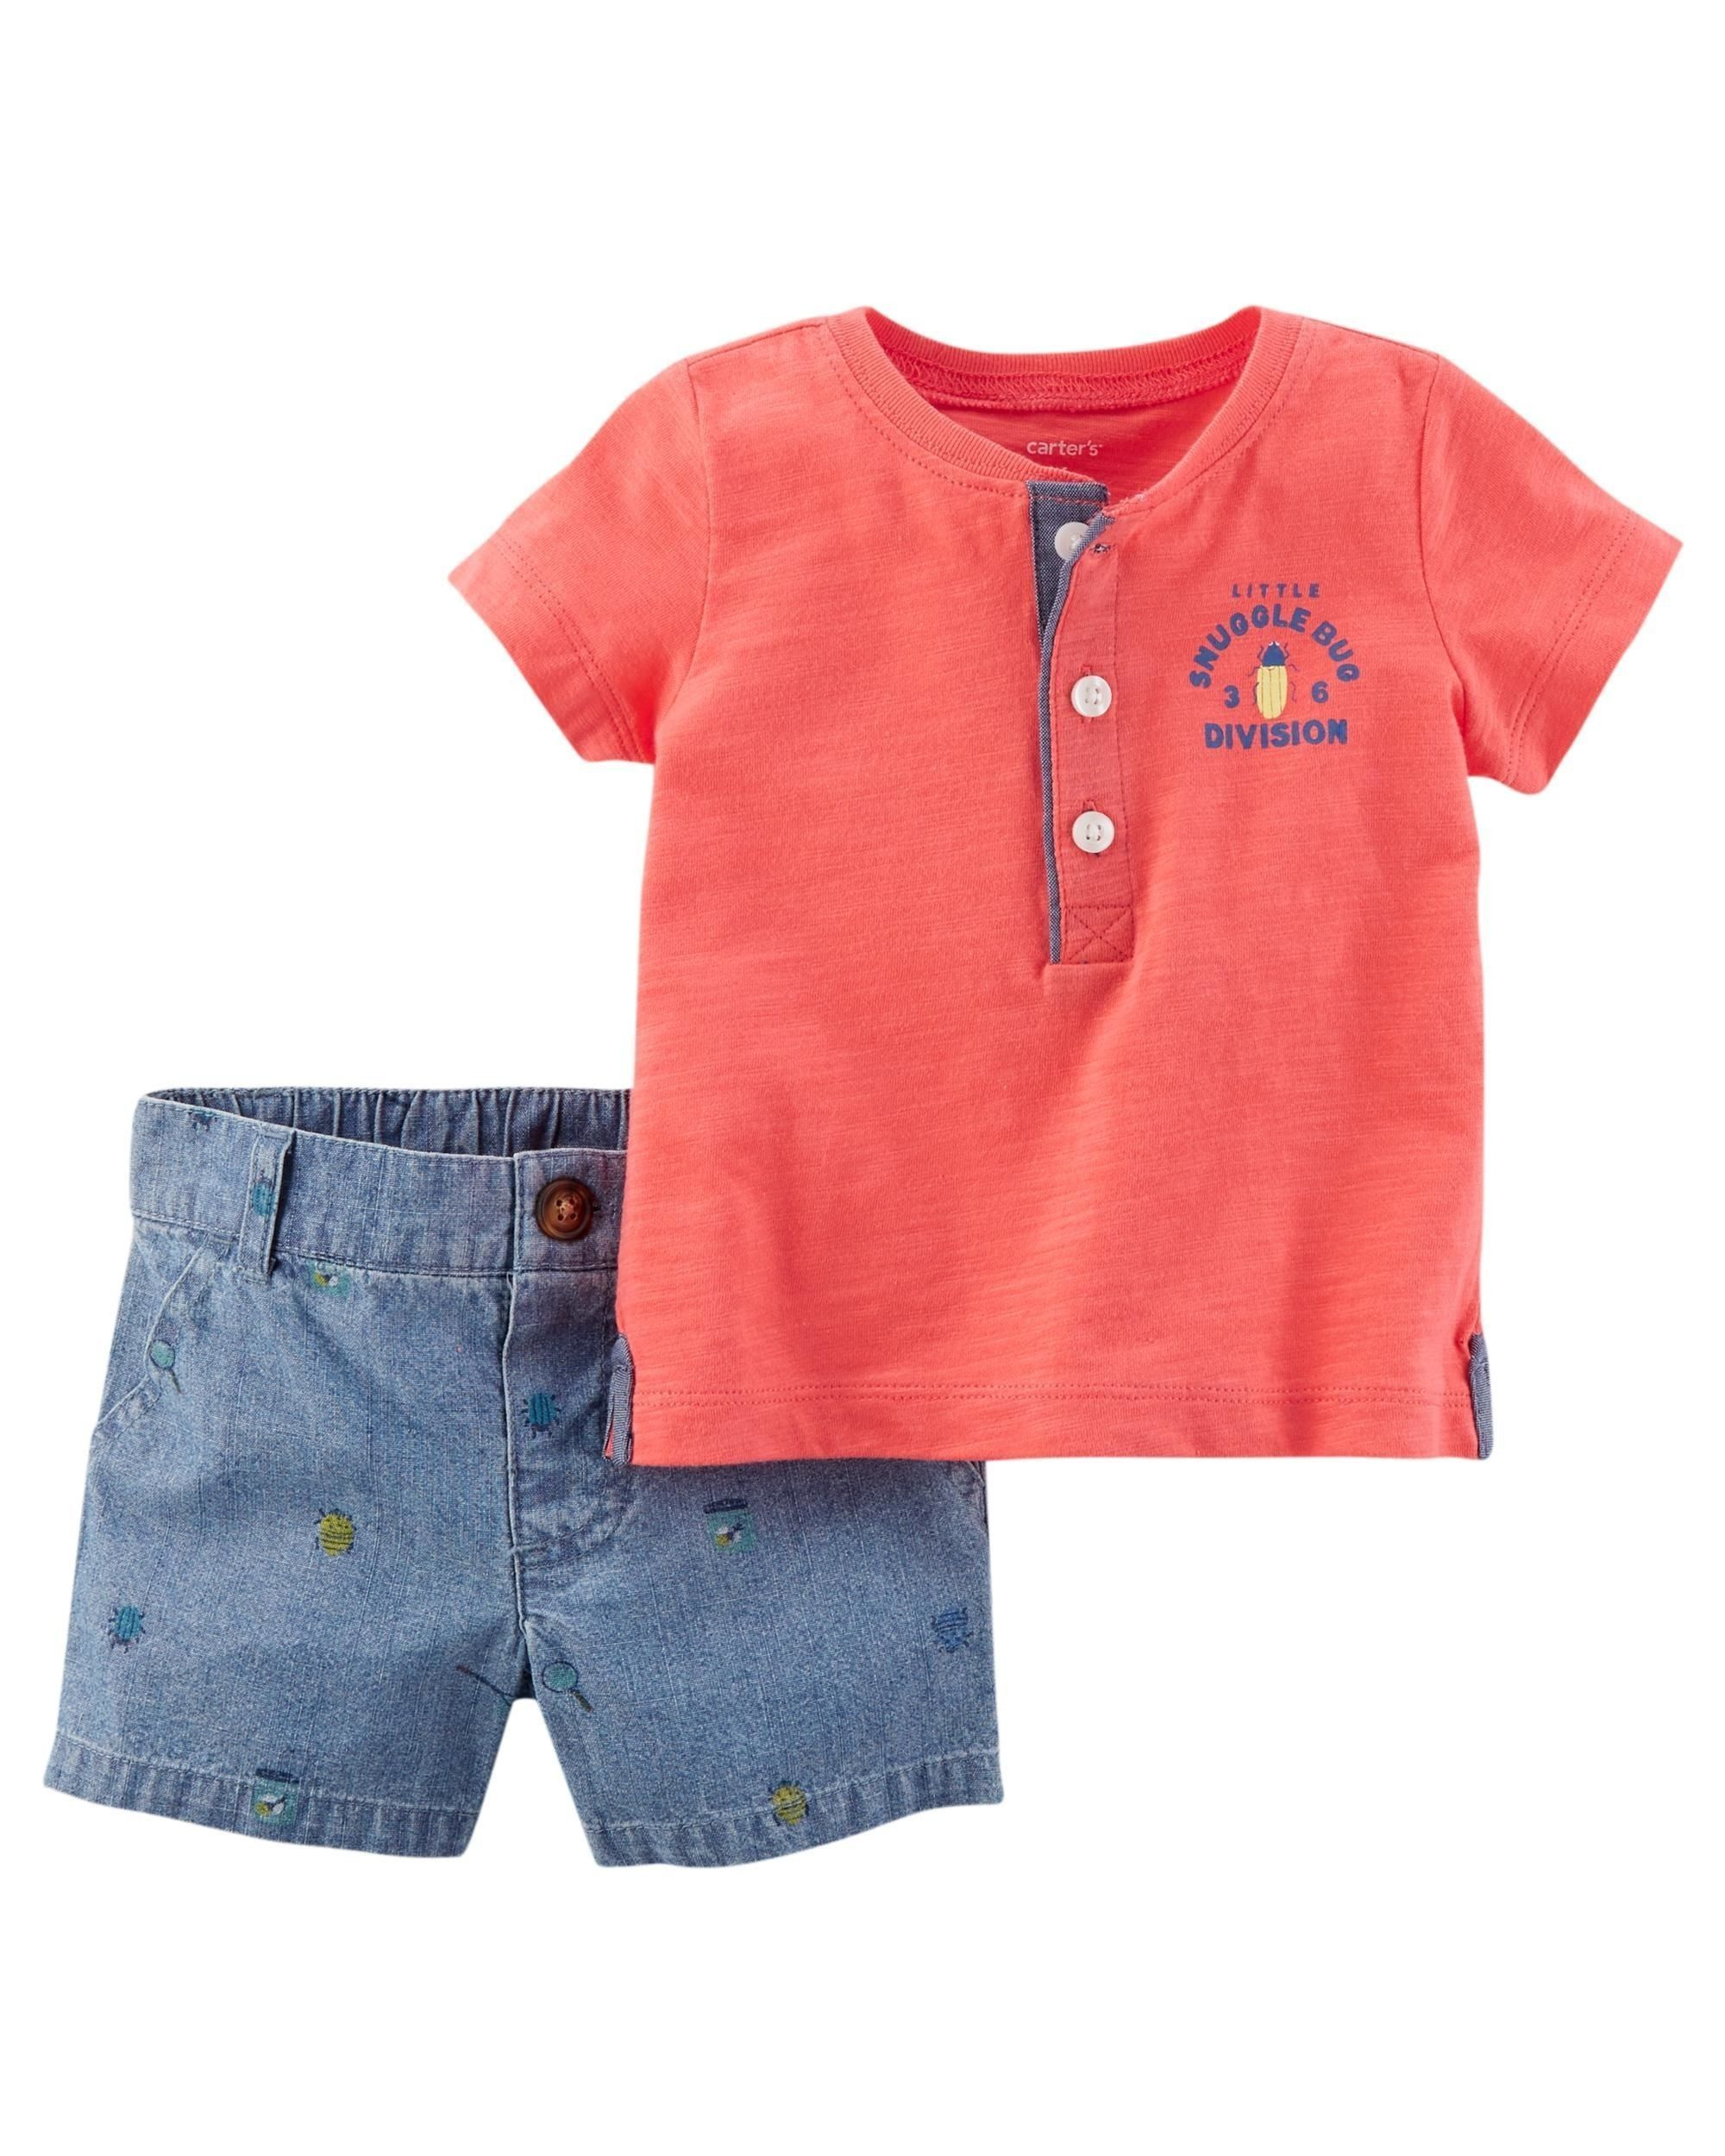 Pin on Baby Clothing